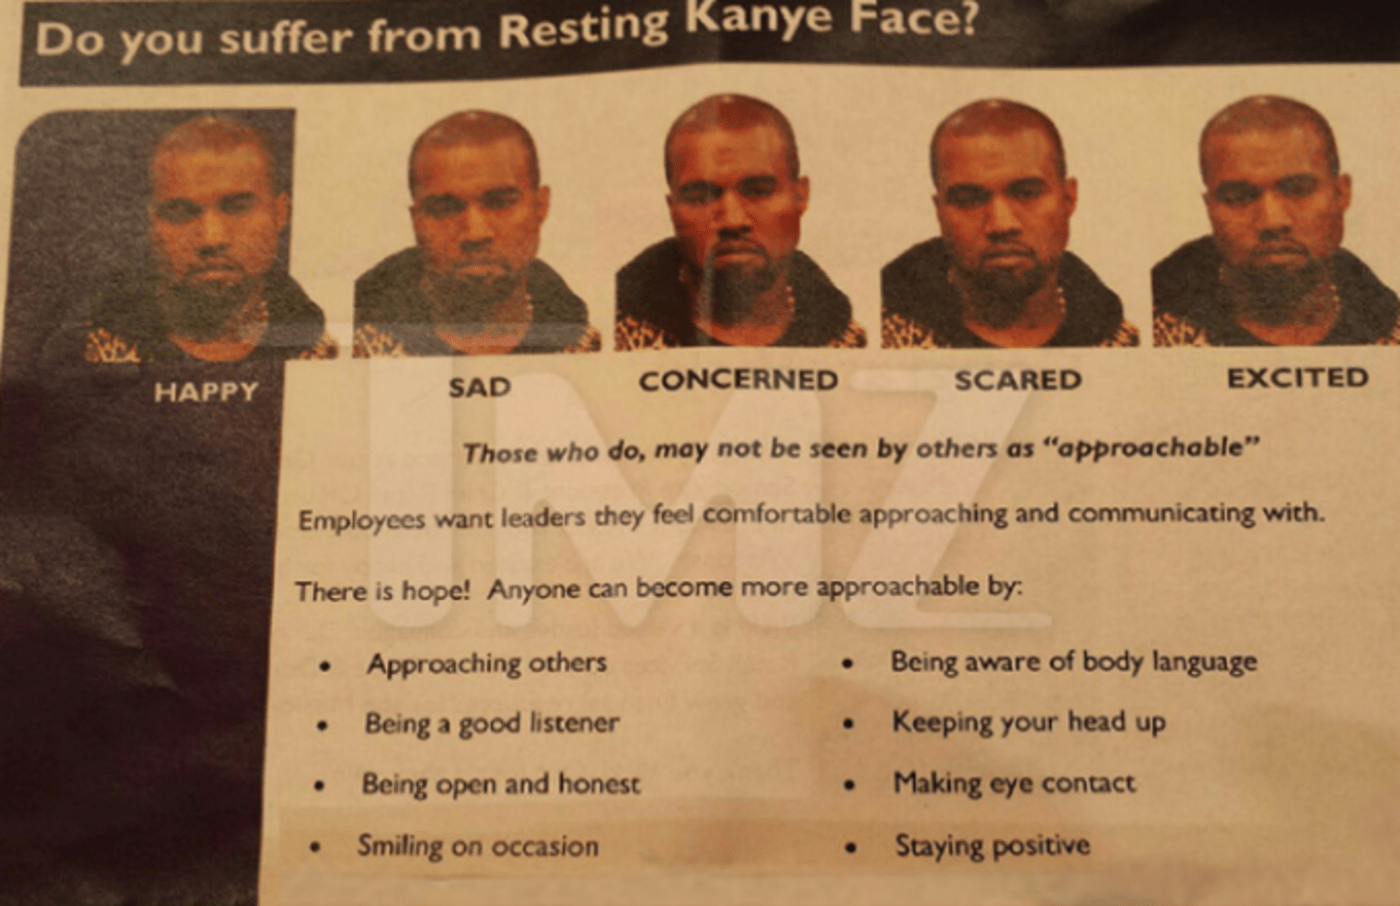 goodwill resting kanye face